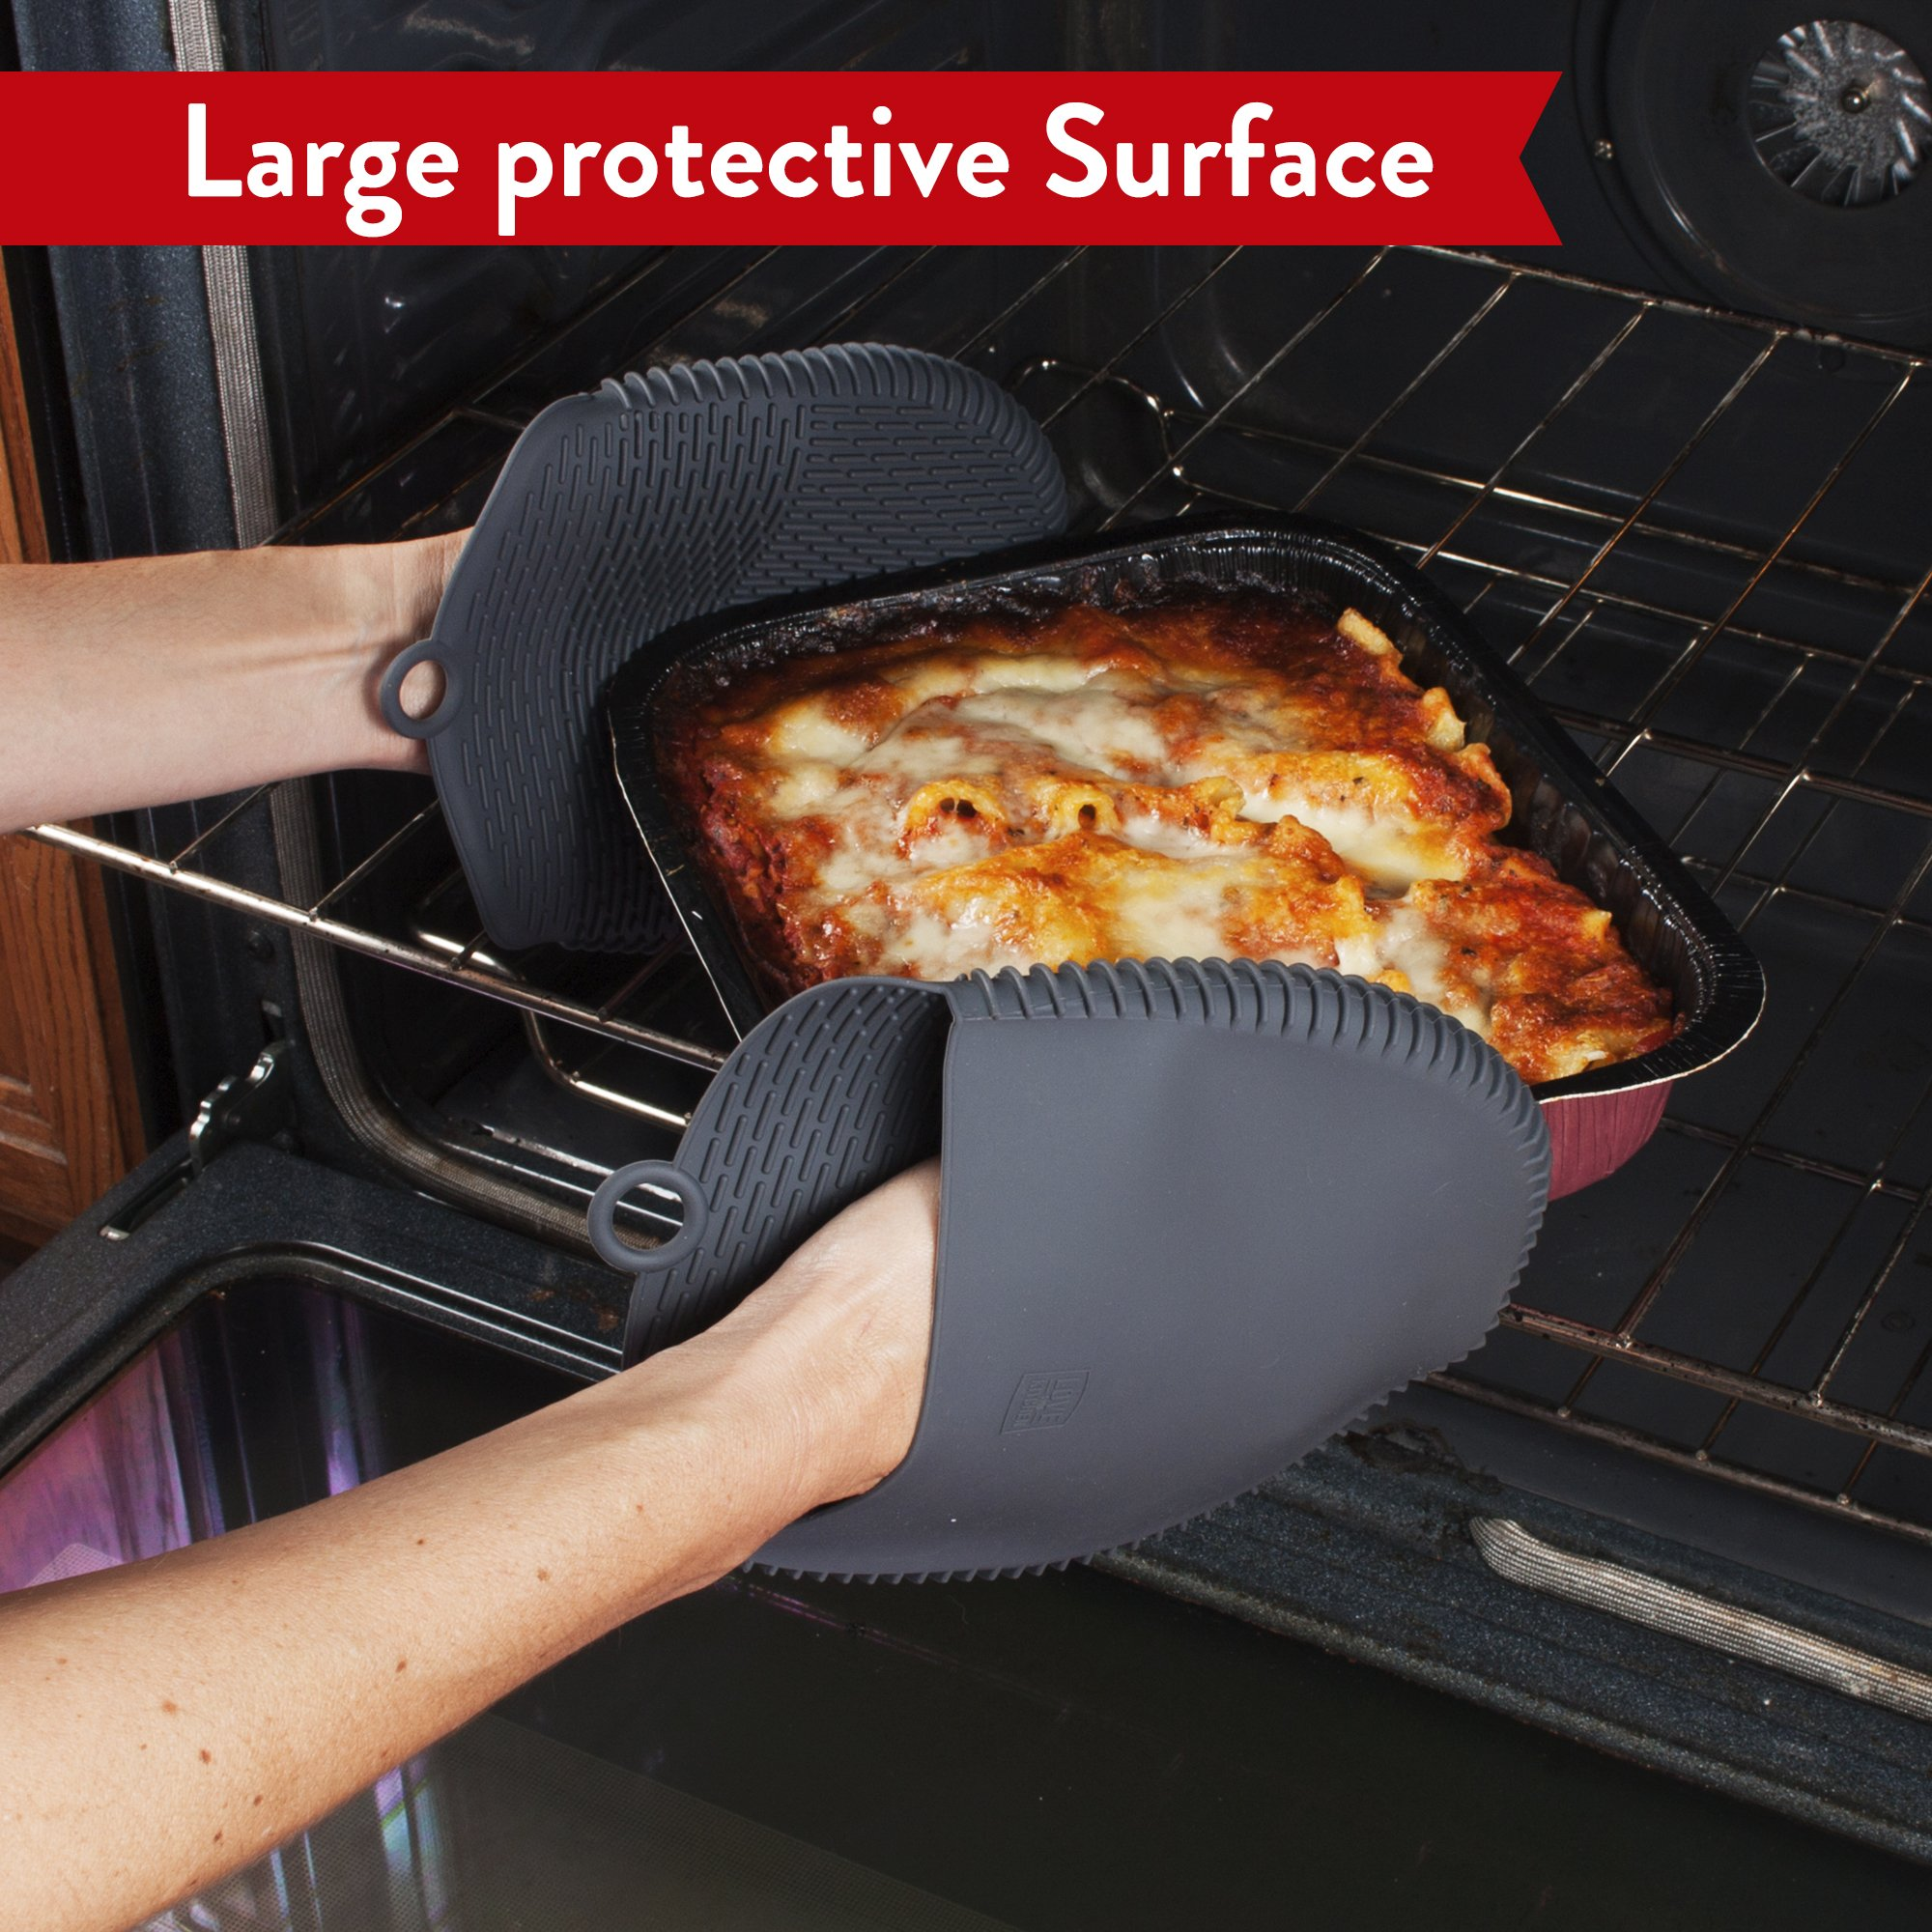 The Ultimate Pot Holders / Oven Mitts | 100% Silicone Mitt is Healthier Than Cotton & Easier to Clean, Won't Grow Mold or Bacteria | Unique Design Makes it Safe, Non-Slip & Flexible (Gray, Set of 2) by Love This Kitchen (Image #8)